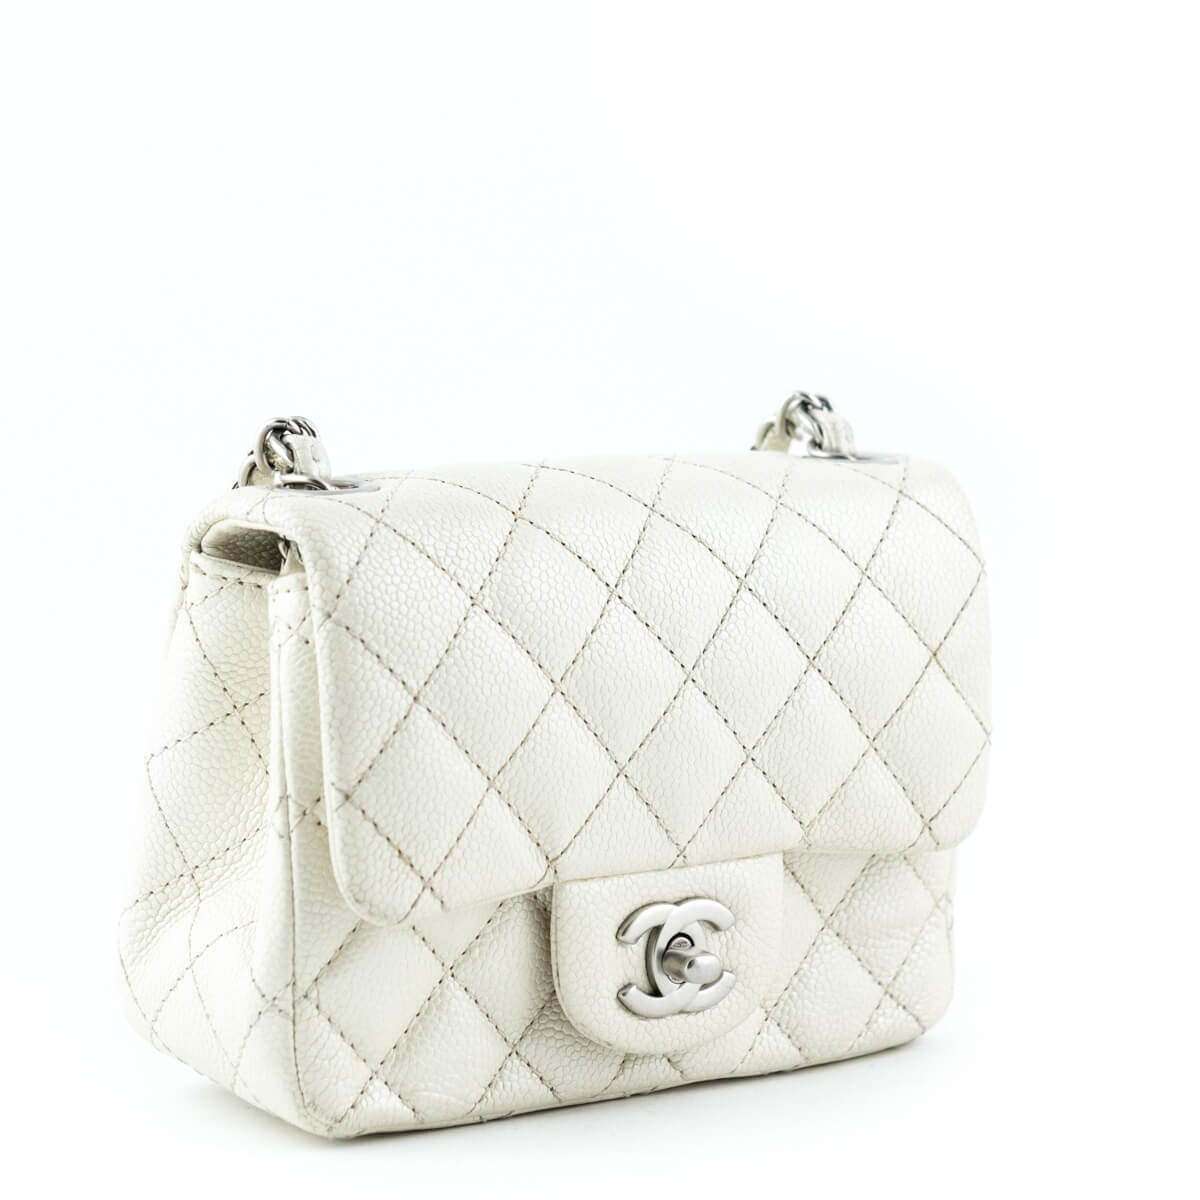 5fa79dd149ce81 ... Chanel Metallic Ivory Caviar Mini Square Flap Bag - LOVE that BAG -  Preowned Authentic Designer ...